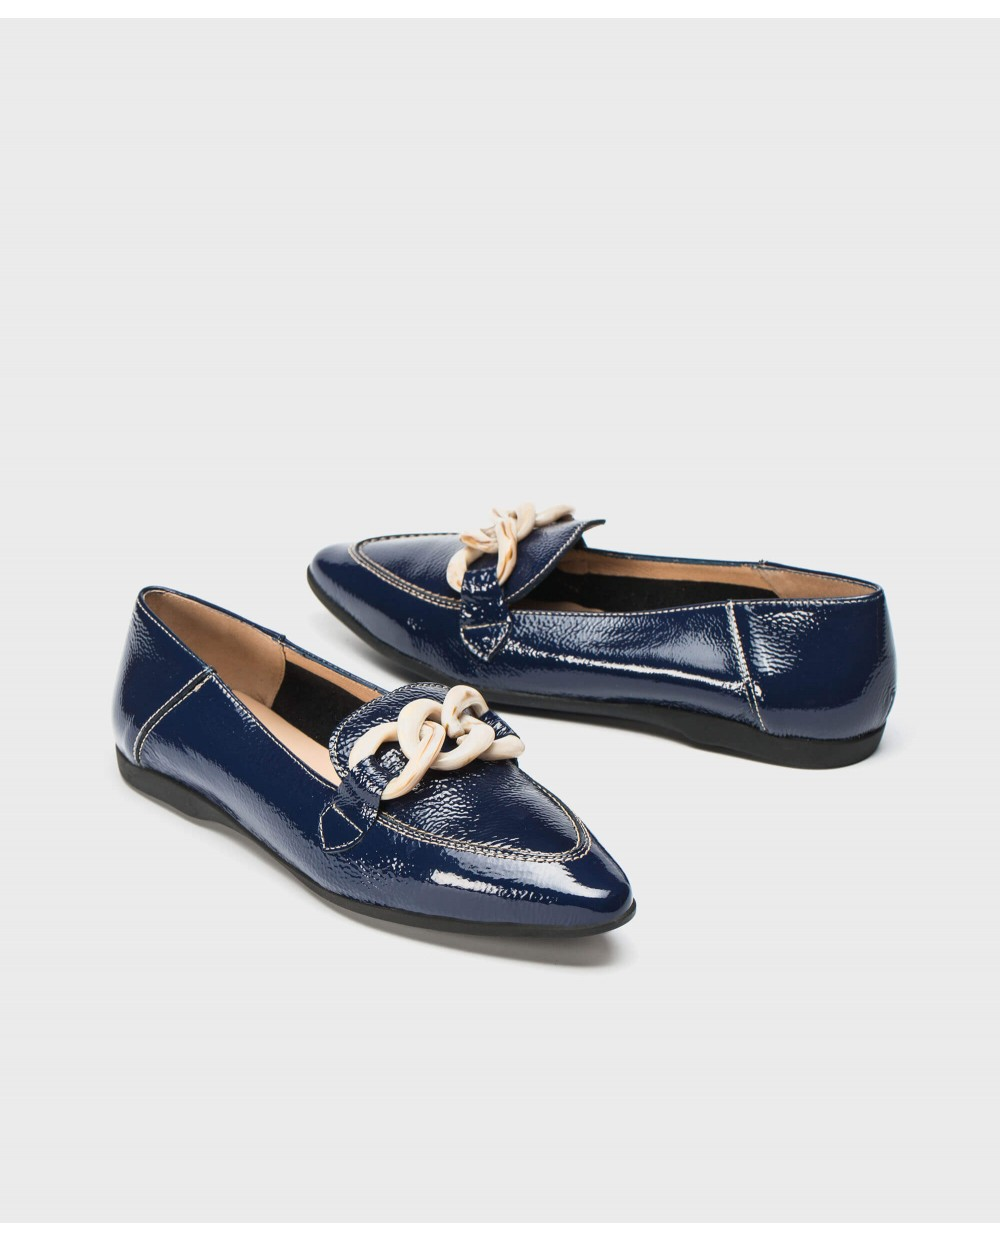 Wonders-Flat Shoes-Moccasin inspired ballet pump